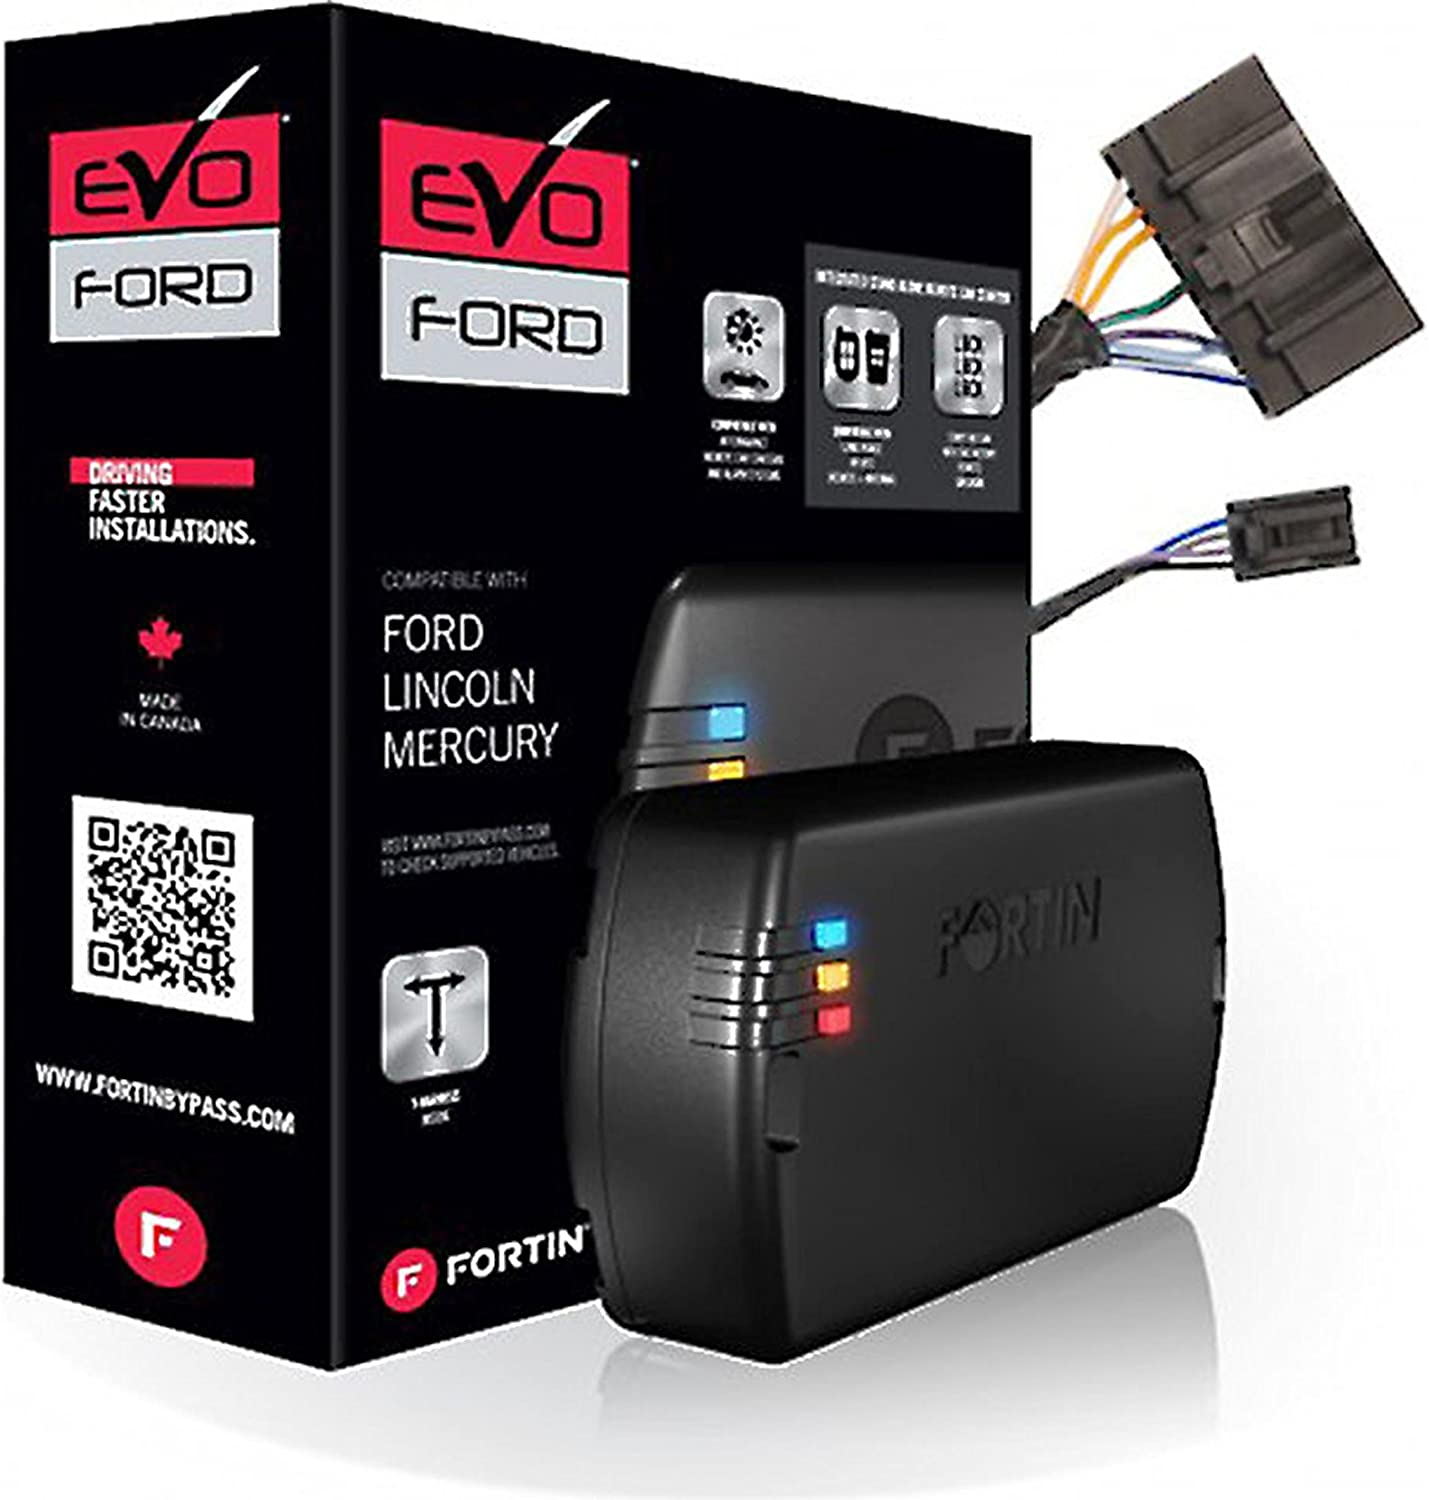 Fortin EVO-FORT2 Stand-Alone Add-On Remote Start Car Starter System for Ford Flip Key Vehicles